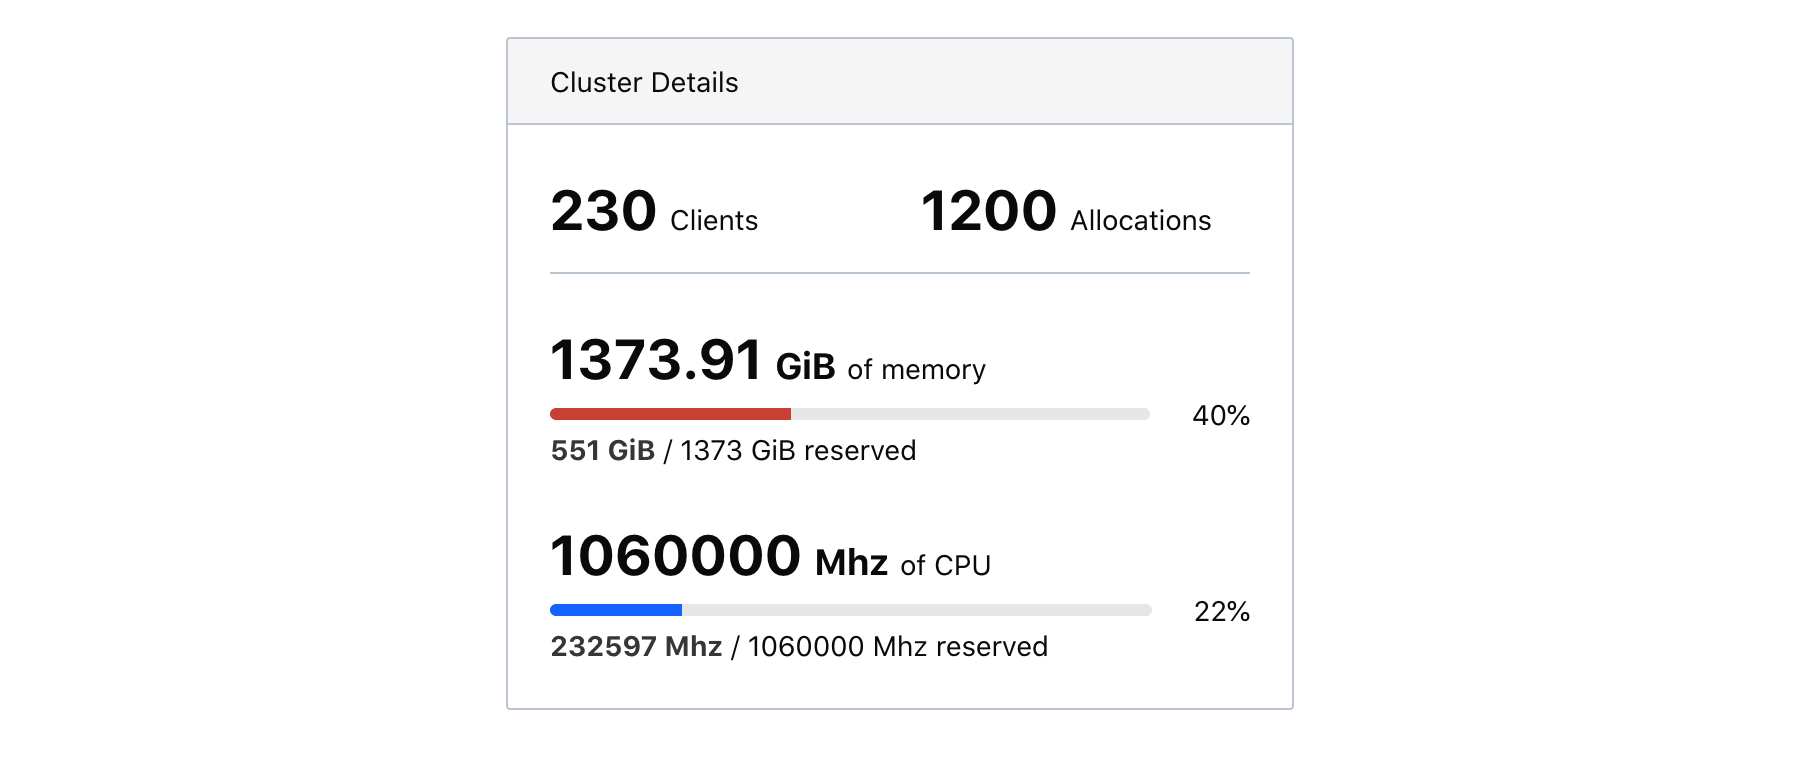 Aggregate cluster statistics, including 230 clients, 1200 allocations, 40% of memory reserved, and 22% of CPU reserved.